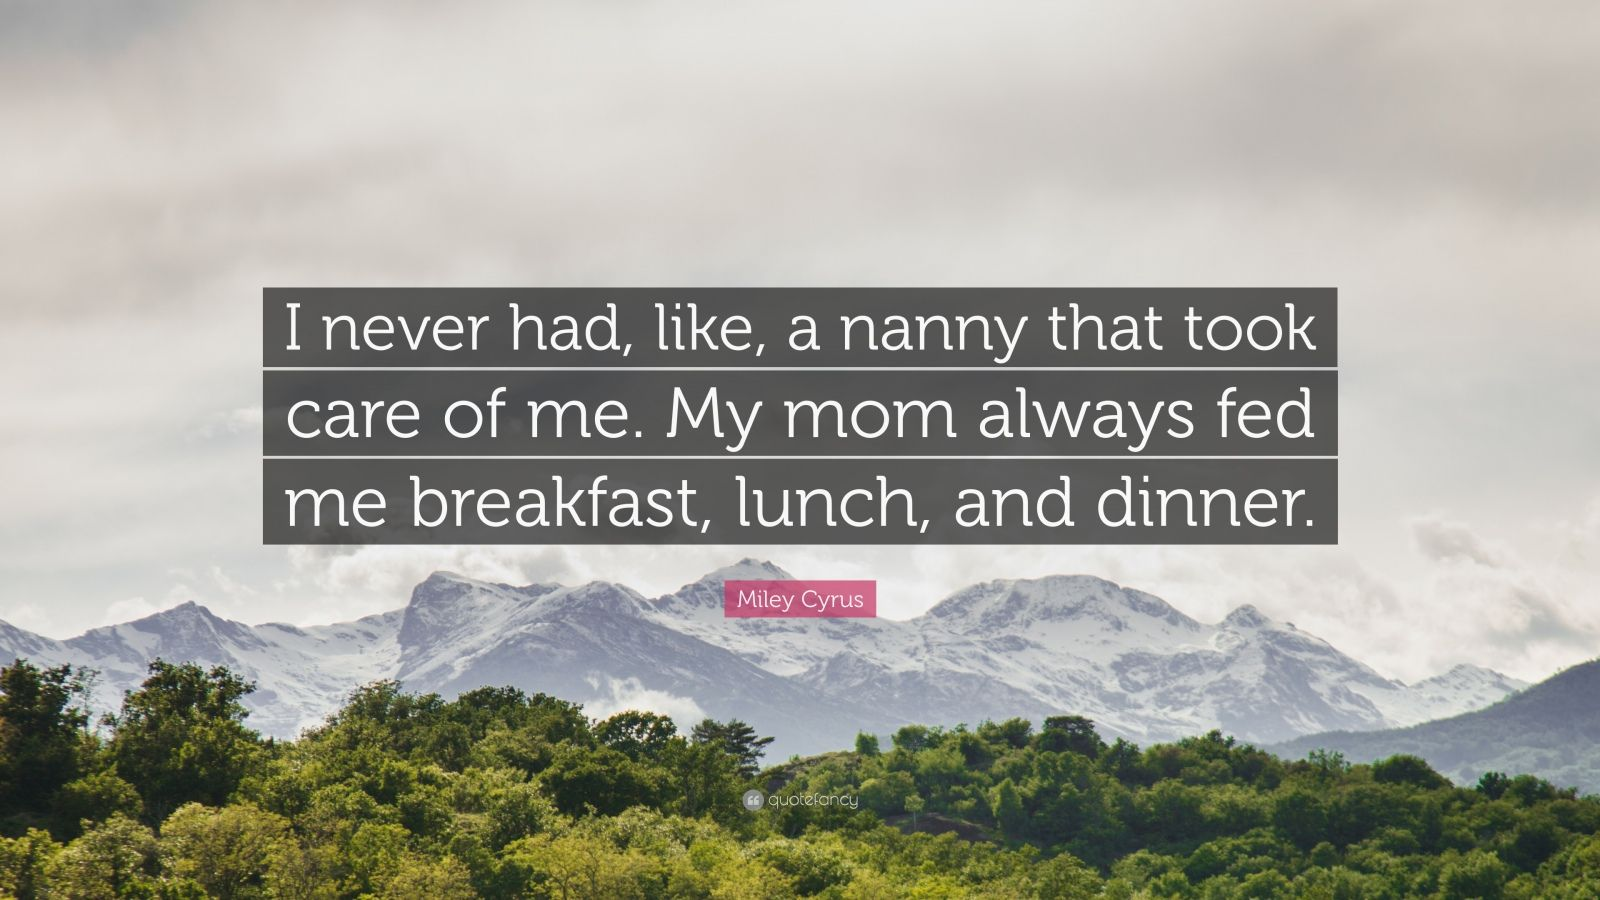 """Miley Cyrus Quote: """"I never had, like, a nanny that took care of me. My mom always fed me breakfast, lunch, and dinner."""""""